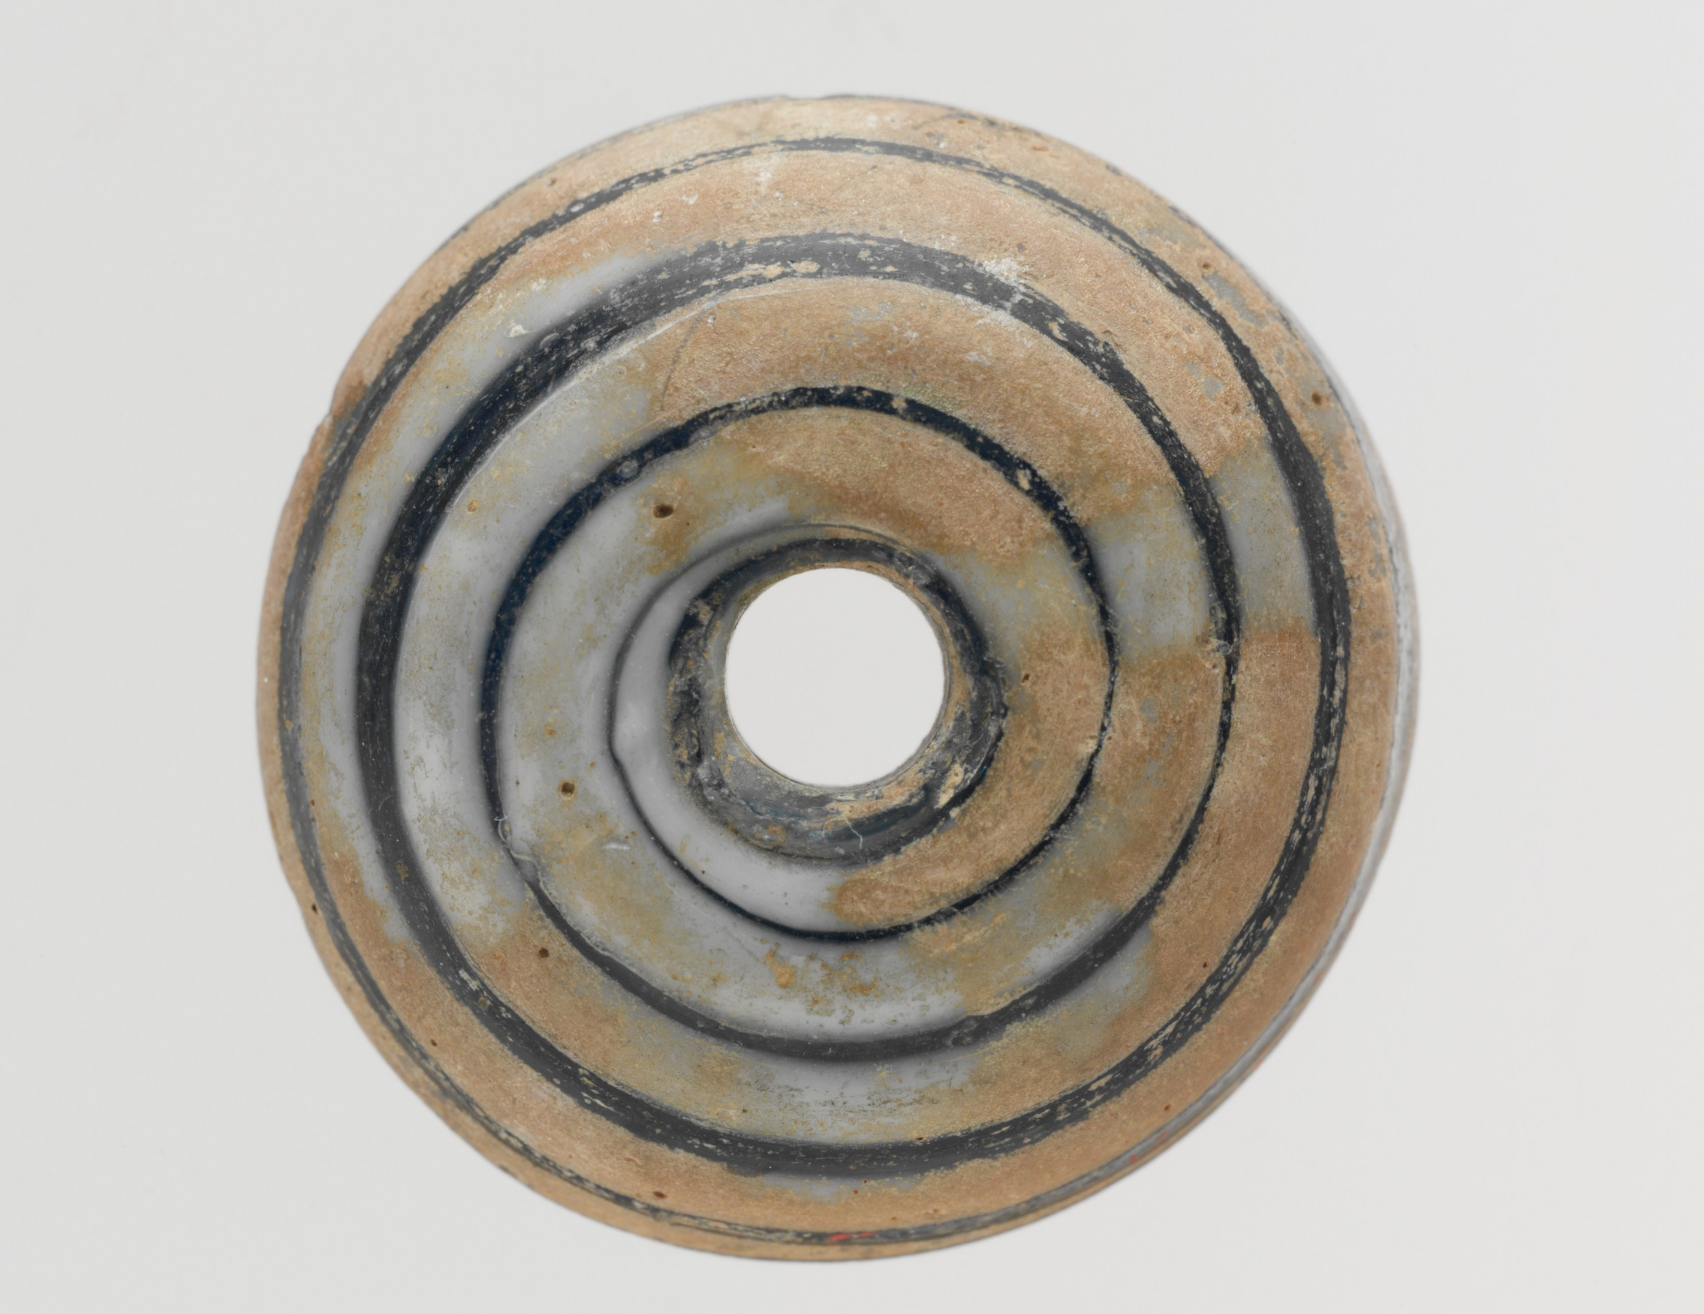 Glass whorl, c0-200 CE, Roman - The Metropolitan Museum of Art       https://www.metmuseum.org/art/collection/search/239925